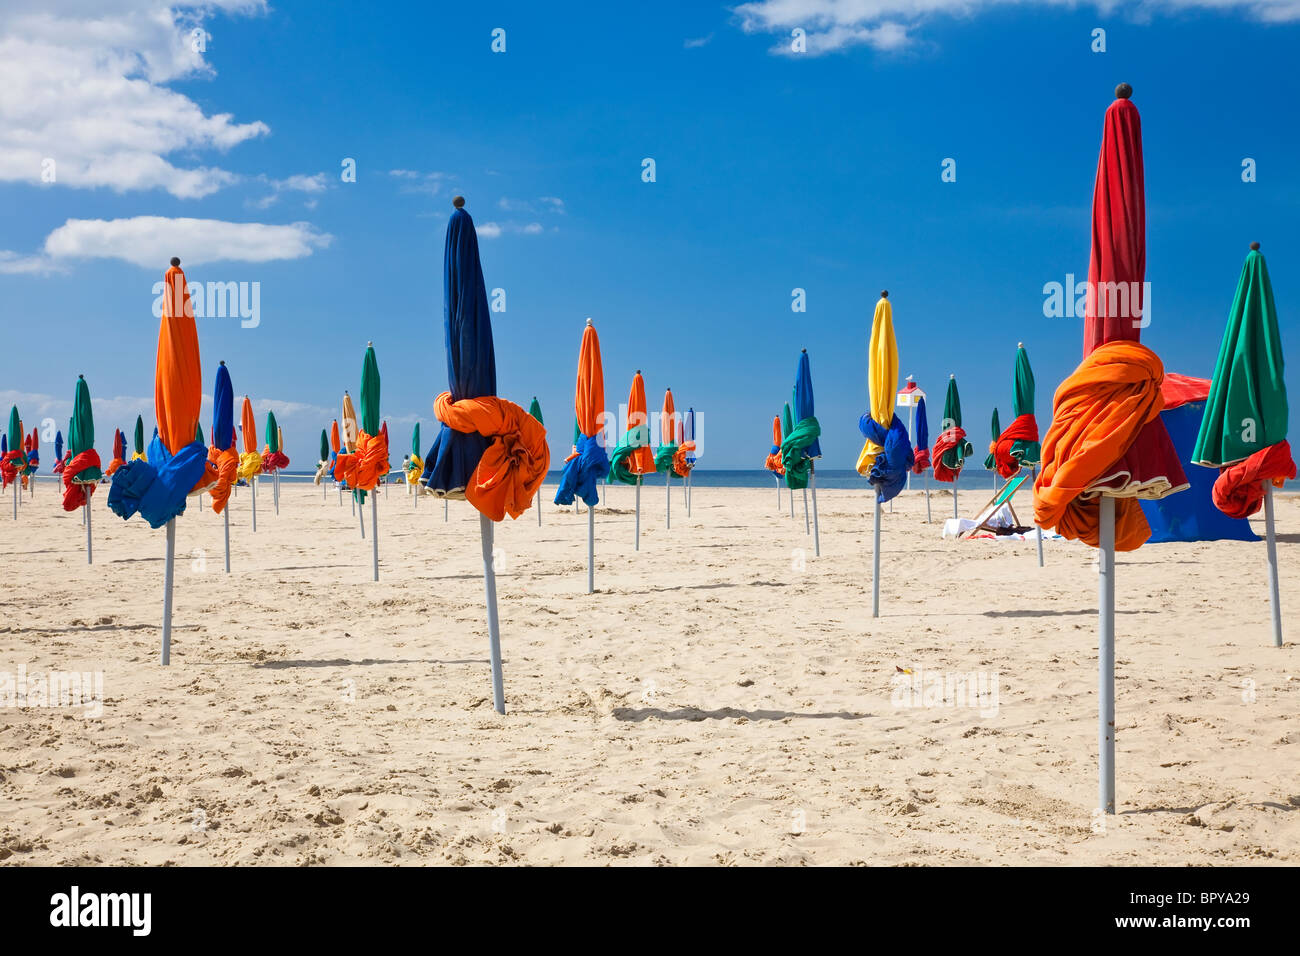 The famous colorful parasols on Deauville Beach, Normandy, Northern France, Europe - Stock Image